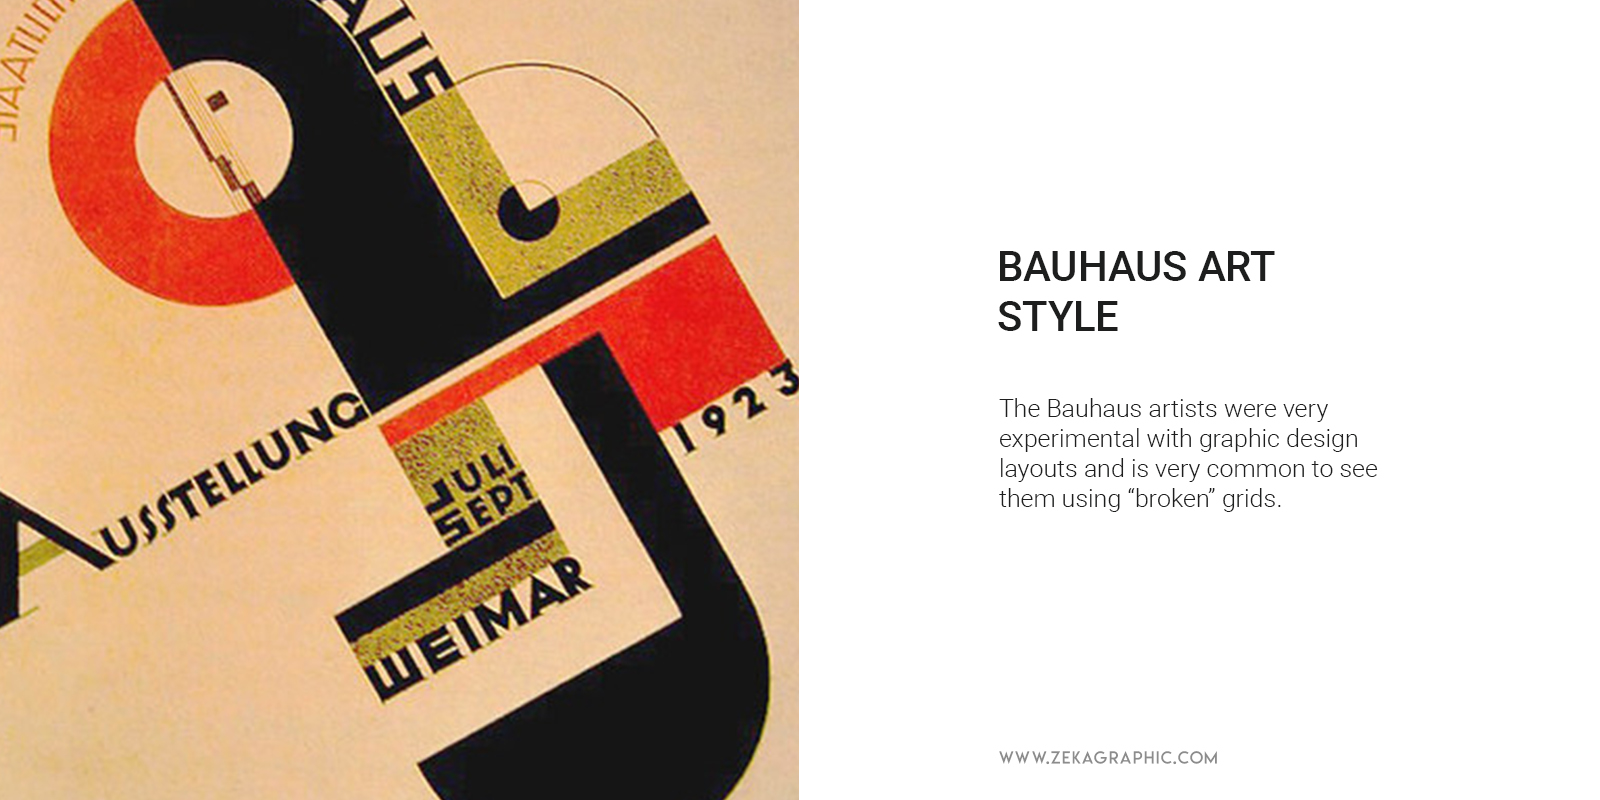 Bauhaus Design Style Using Experimental Grids and Technology